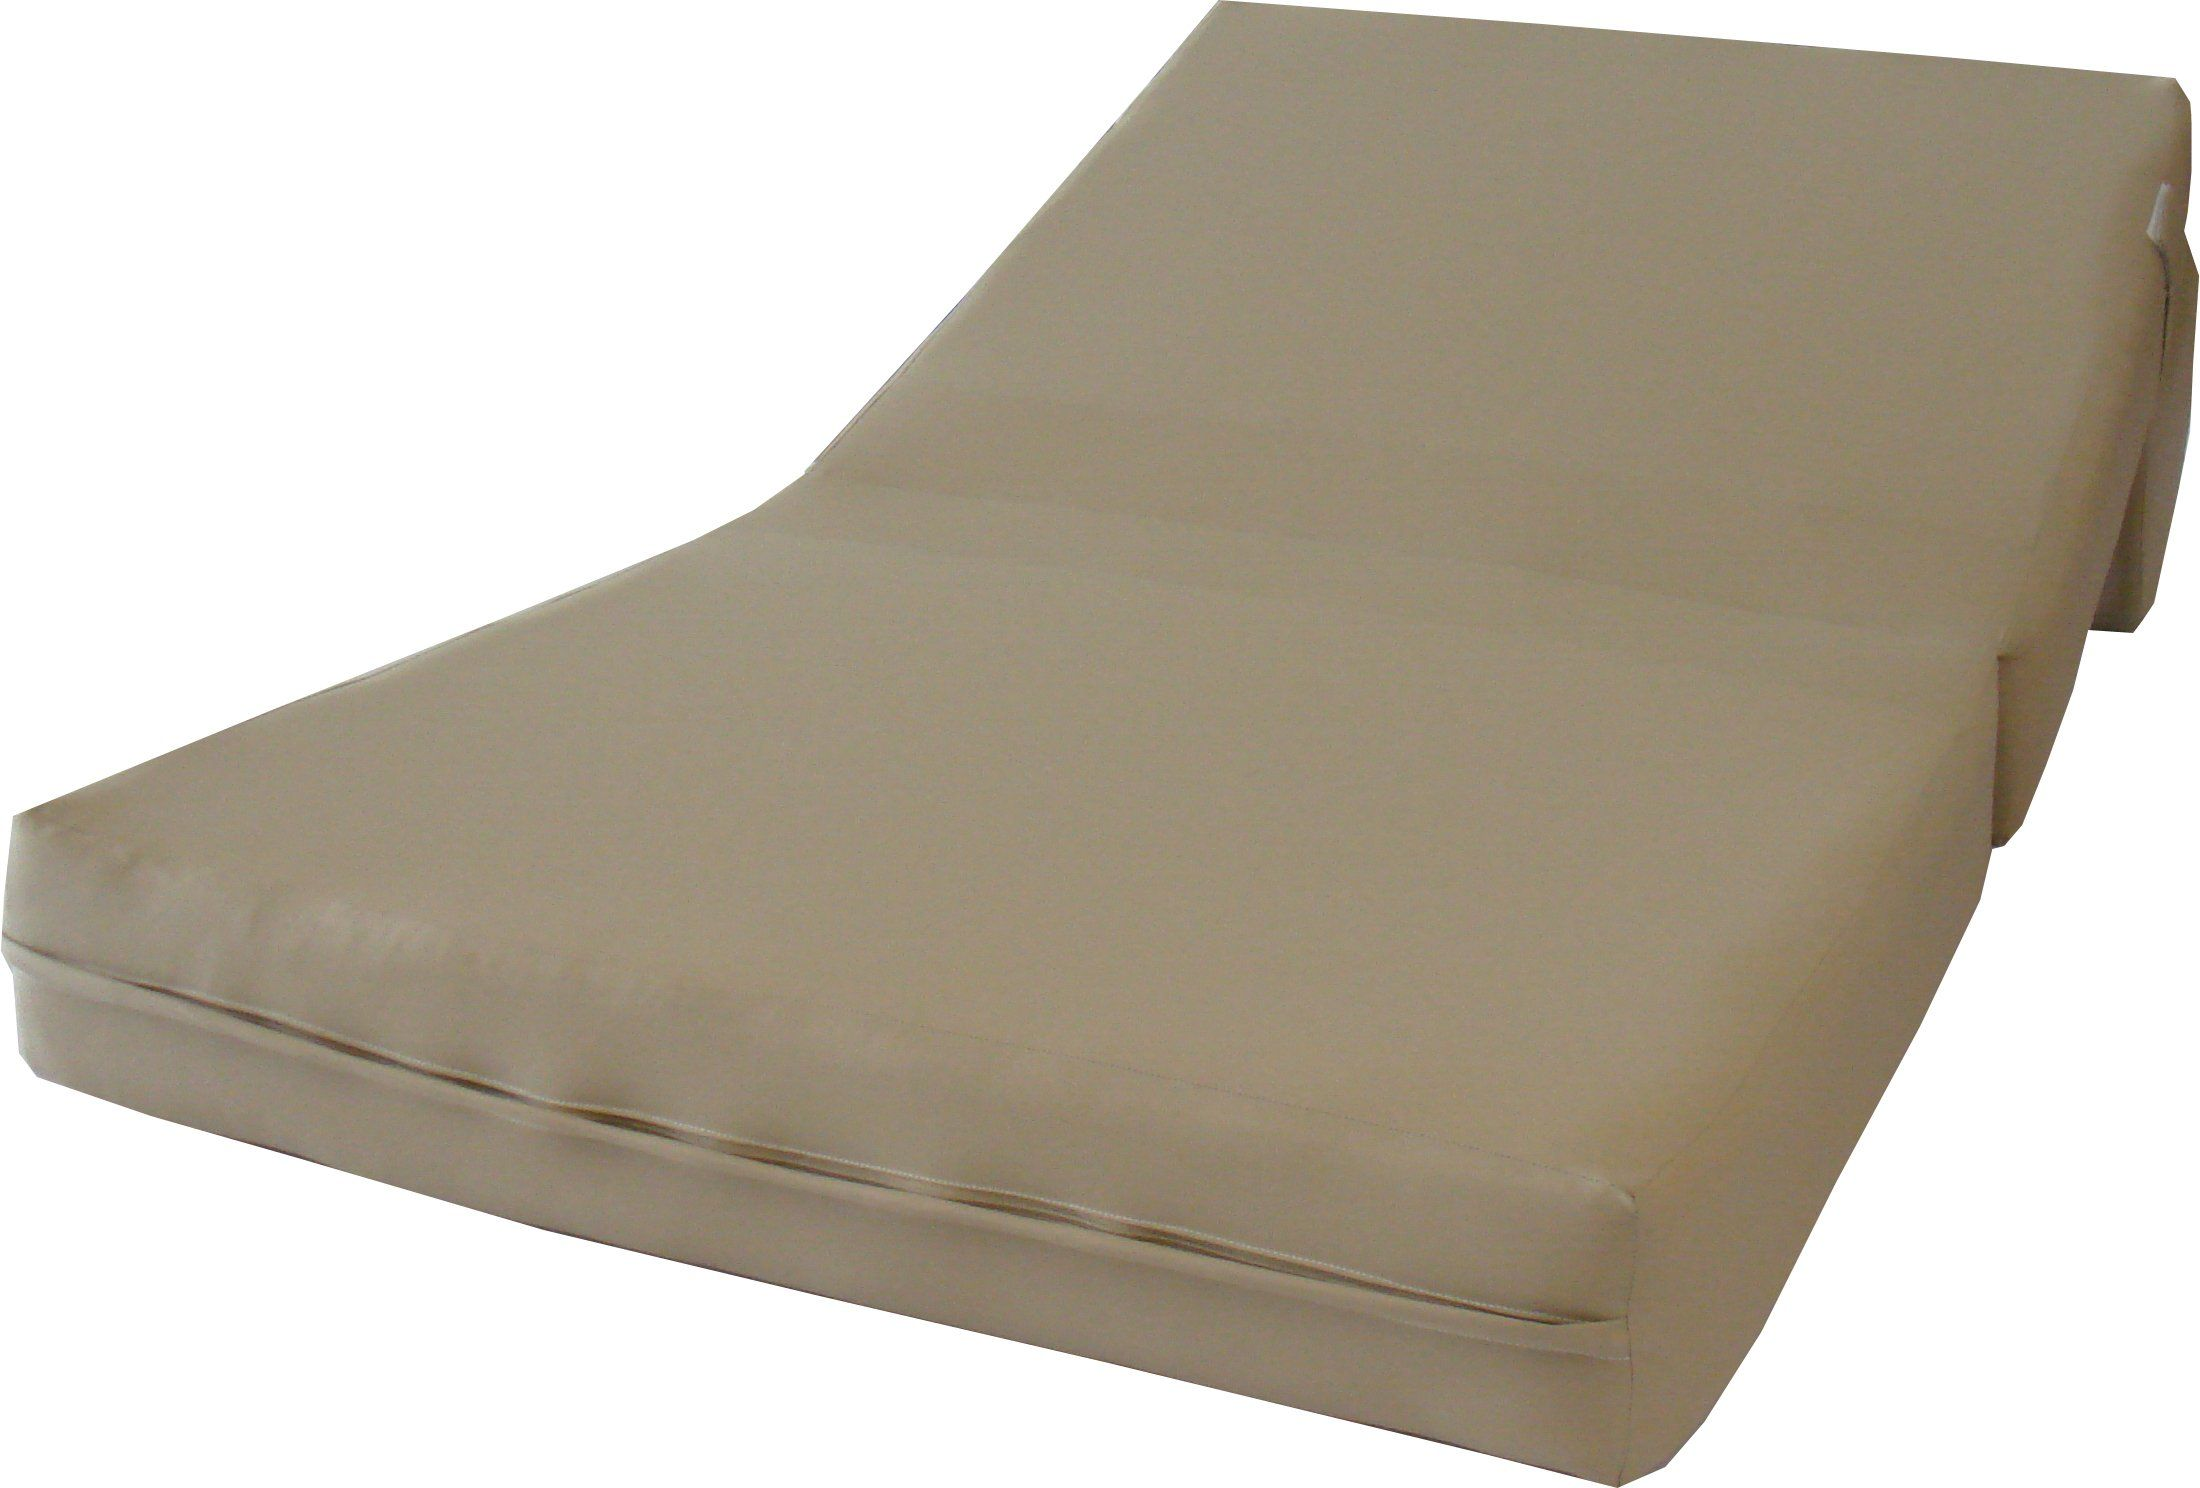 Sleeper Chair Folding Foam Bed 6 Thick X 36 Wide X 70 Long Twin Size Tan Sleeper Chair Folding